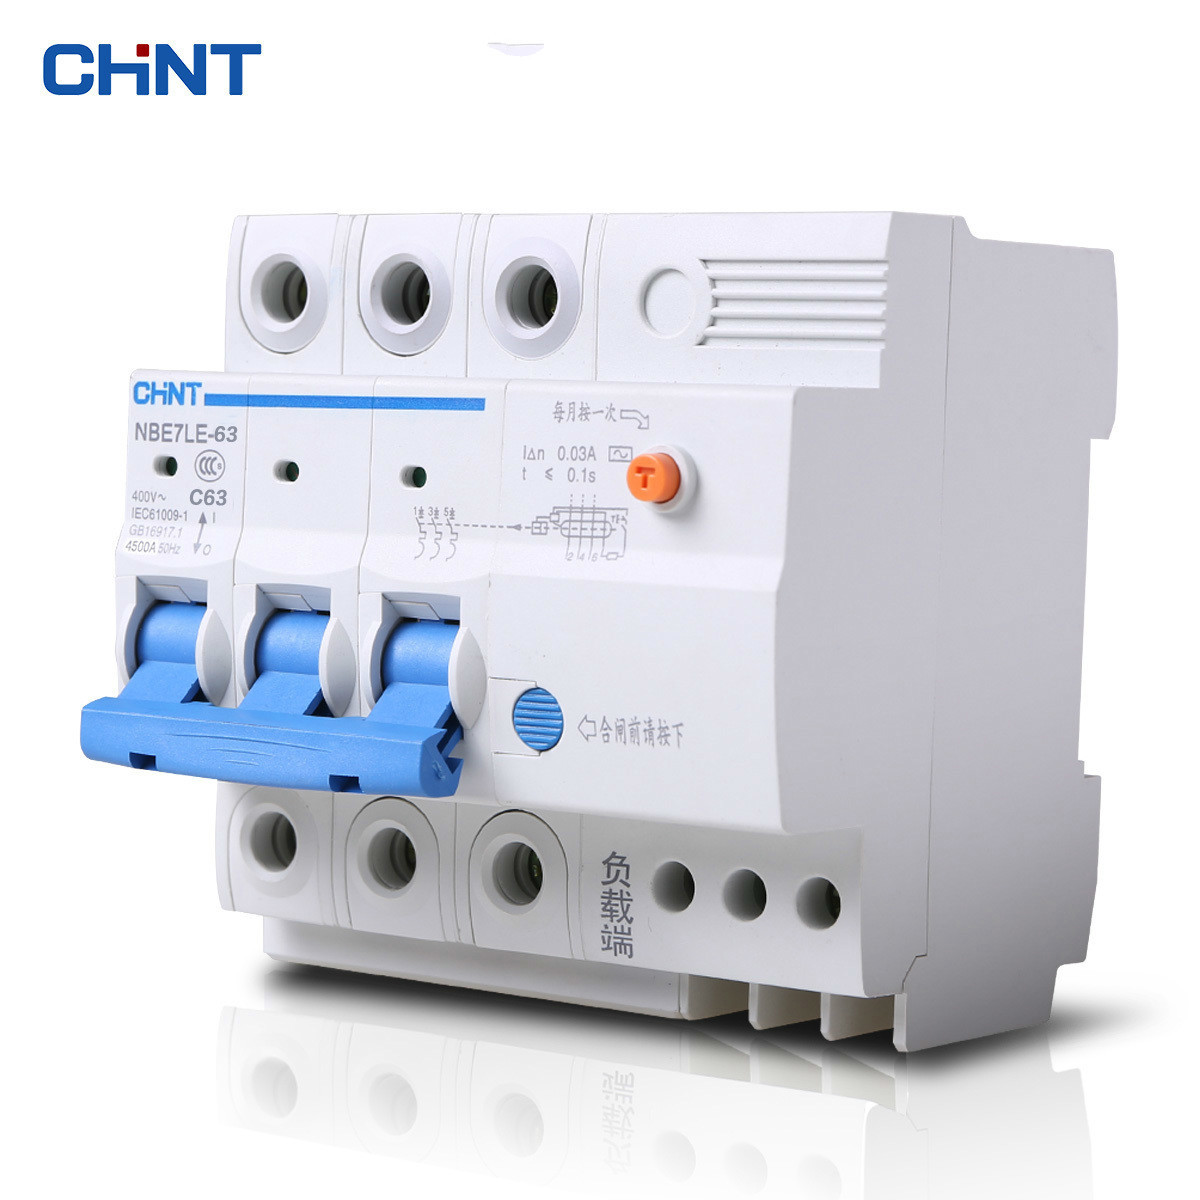 CHINT Leakage Protection Three - Phase Circuit Breaker NBE7LE 3P 63A With Leakage Protector Air Switch chnt chint leakage protector nbe7le 3p n 16a 20a 25a 32a 40a 63a small circuit breaker air switch